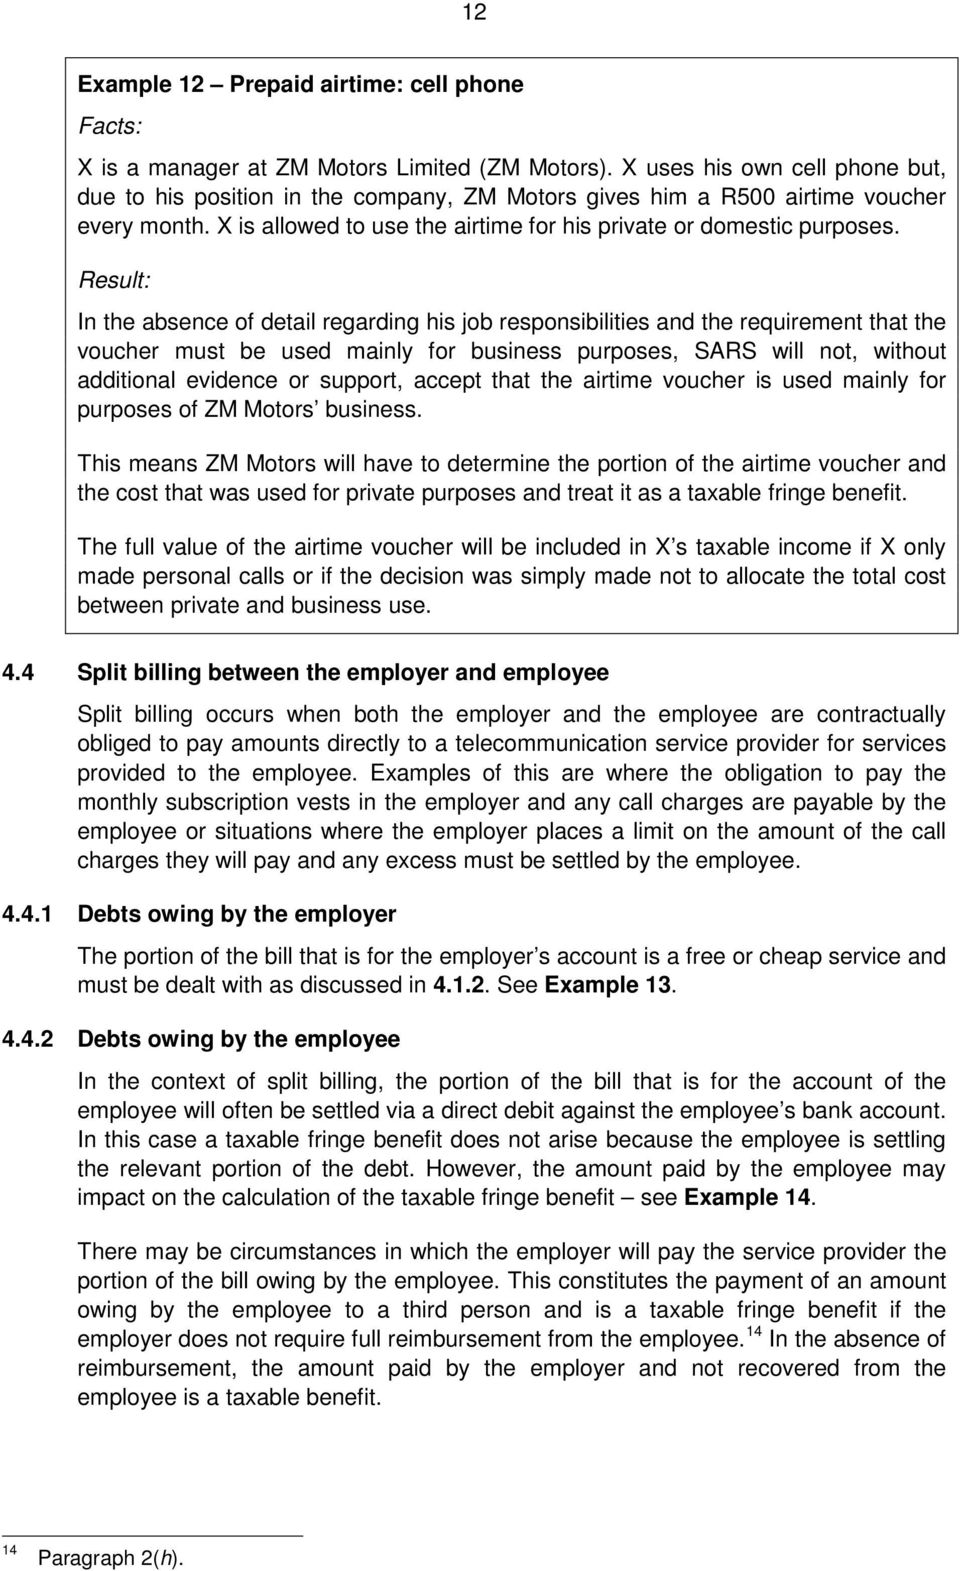 In the absence of detail regarding his job responsibilities and the requirement that the voucher must be used mainly for business purposes, SARS will not, without additional evidence or support,